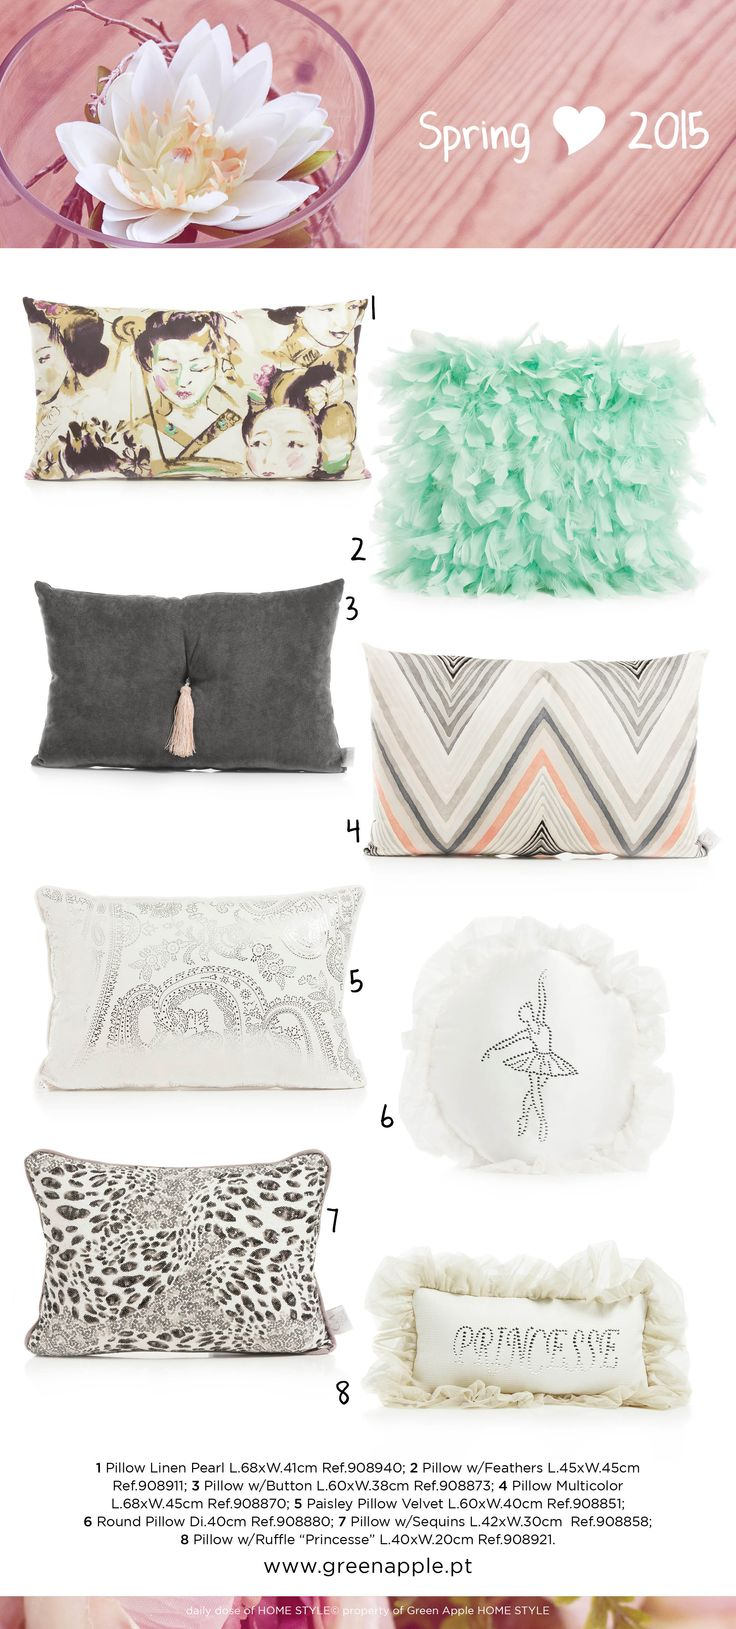 Green Apple HOME STYLE ♥ Spring 2015 #InspiringCollections #InteriorDecoration #Furniture #Portugal #Spring #Pillow #ThrowPillows